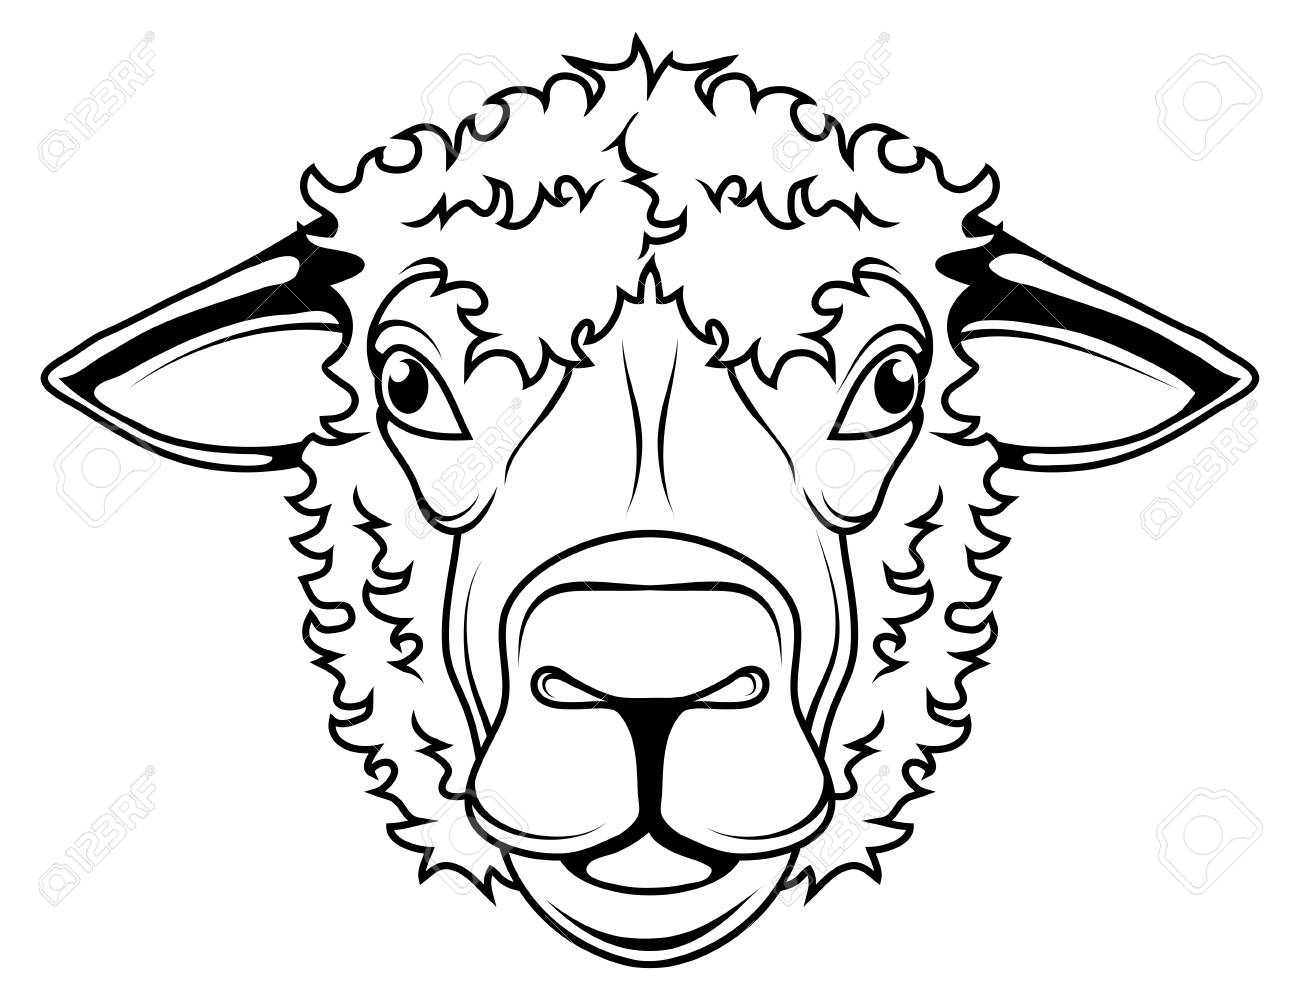 Sheep Vector Drawing Sheep Head Drawing Sketch Sheep In Black Royalty Free Cliparts Vectors And Stock Illustration Image 124802447